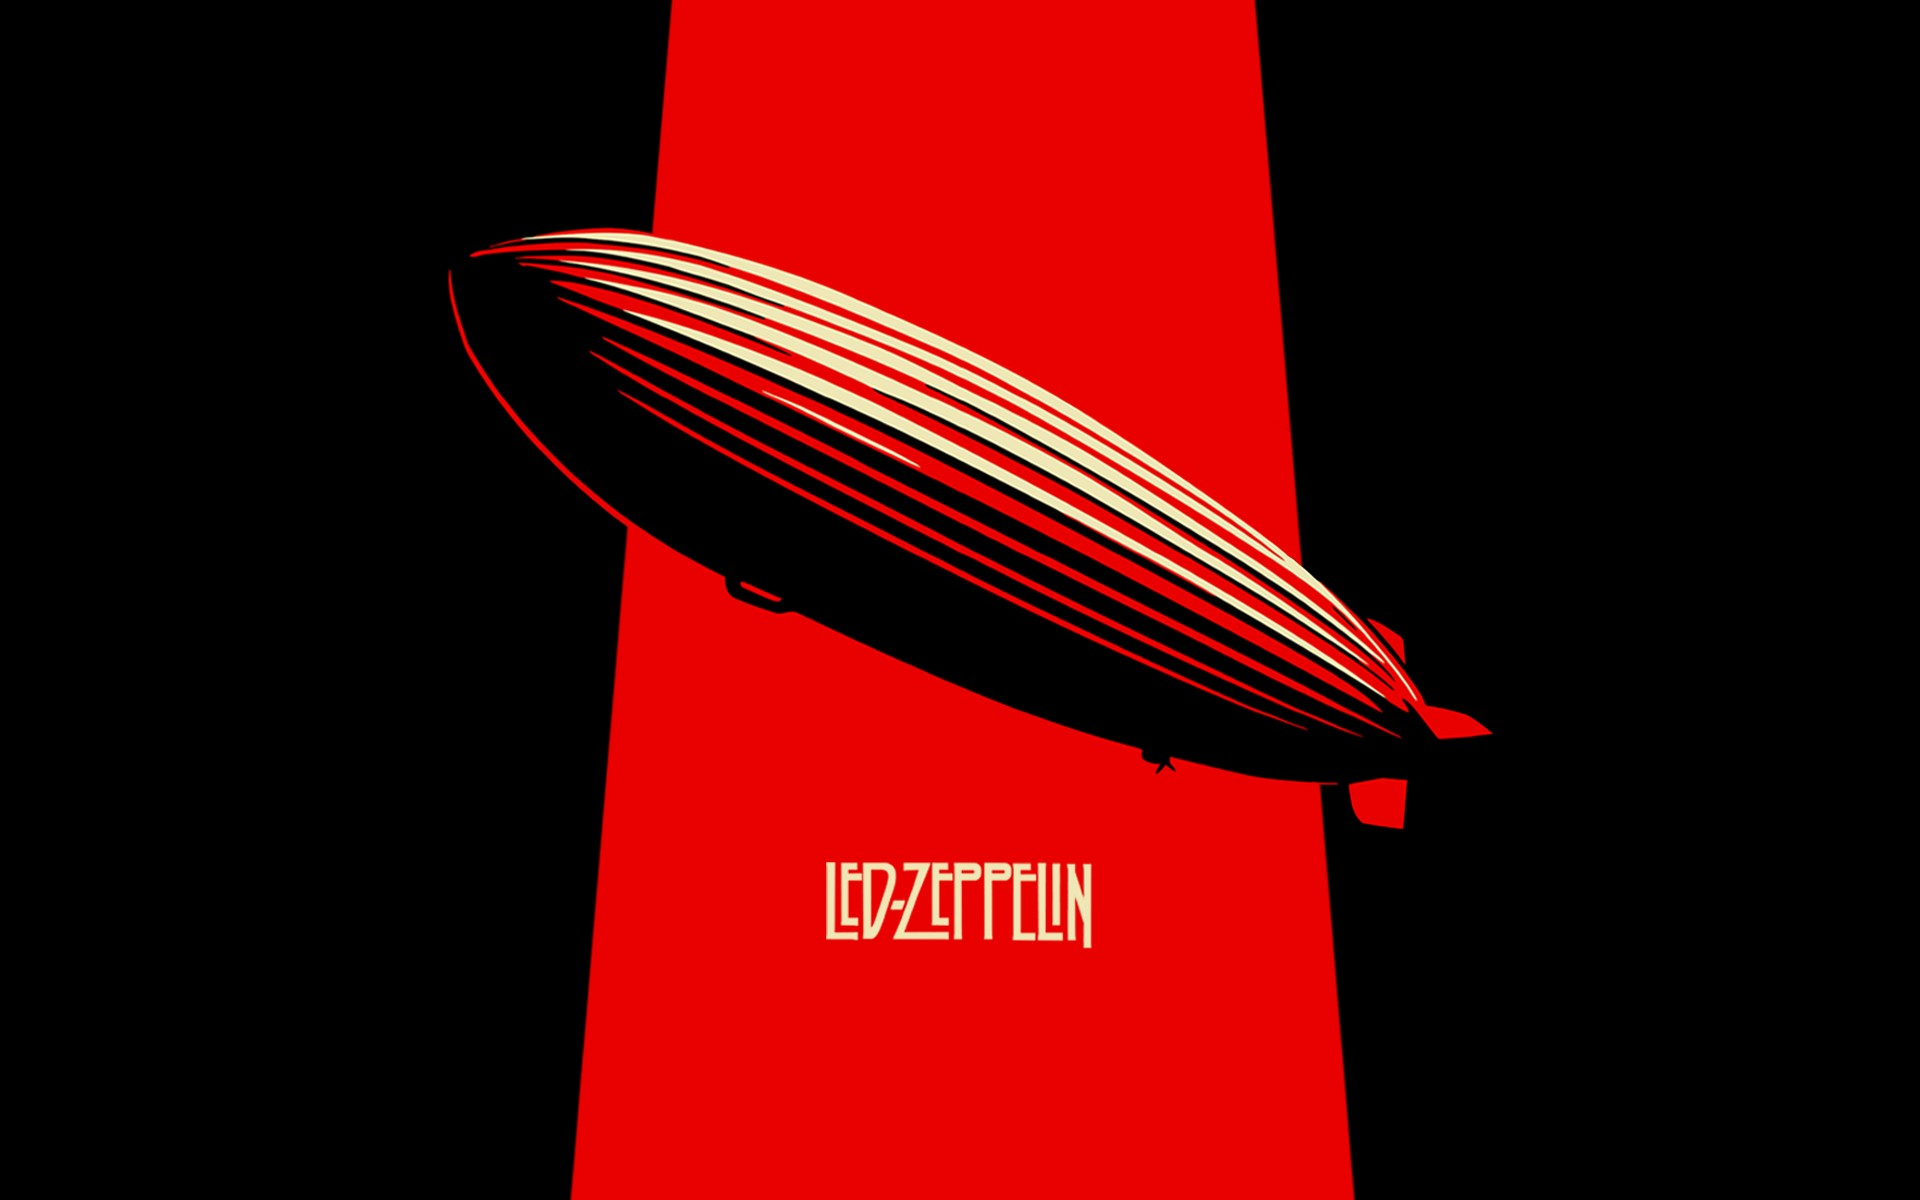 Led Zeppelin facts